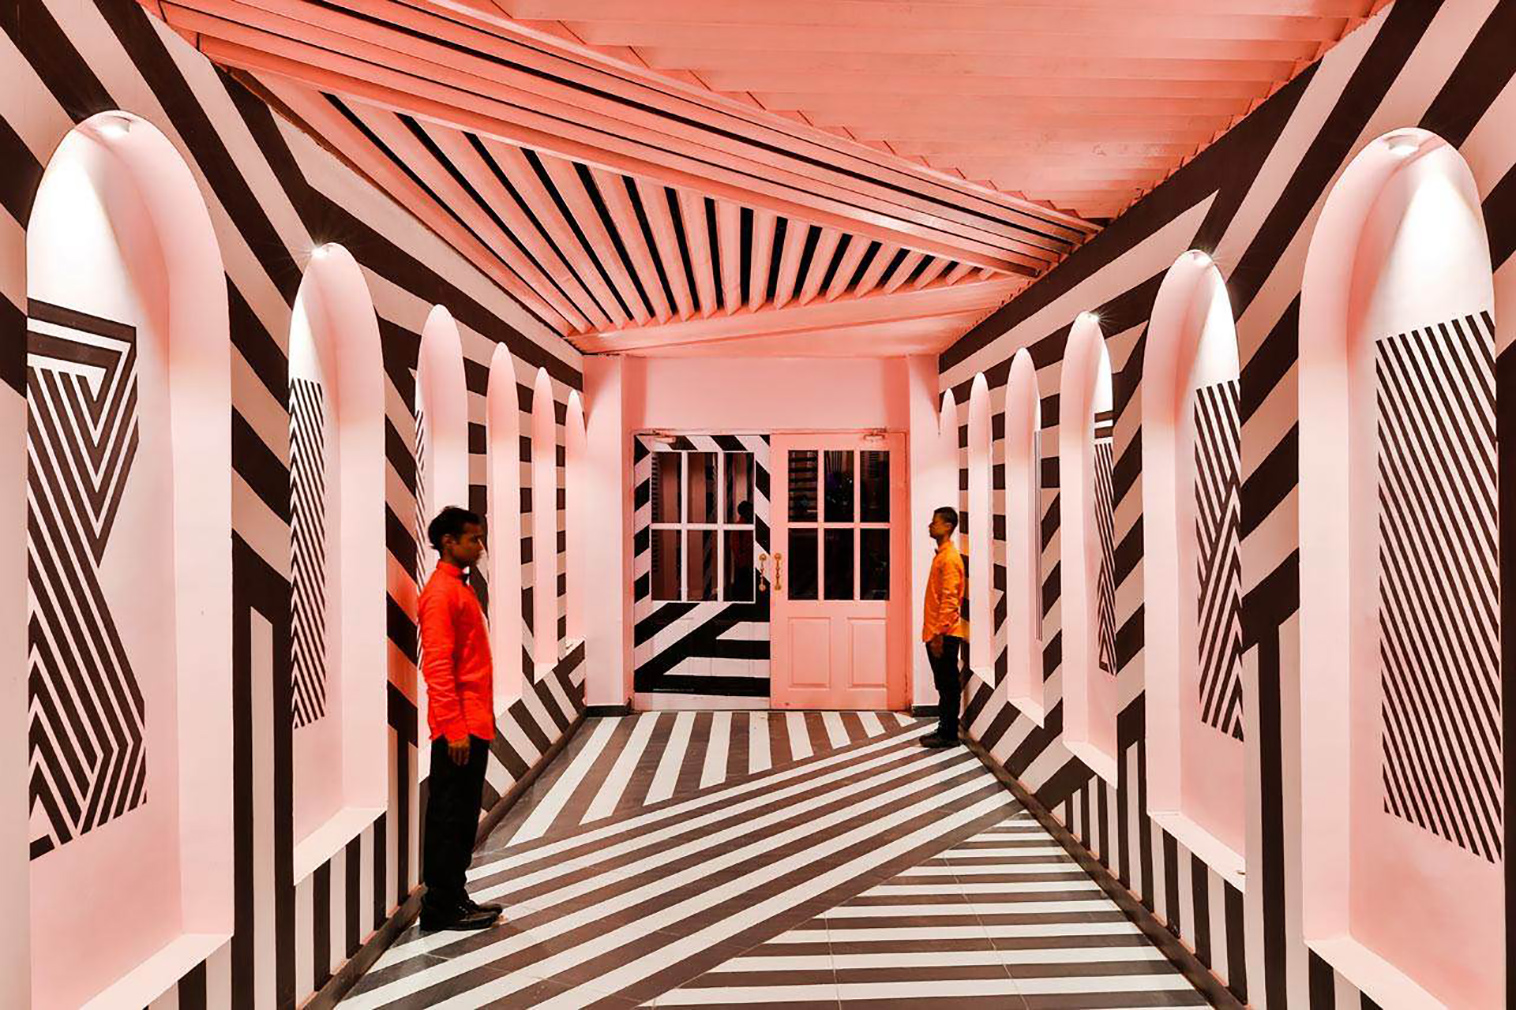 Pink Zebra cafe in India. Photography: Saurabh Suryan - Lokesh Dang for Renesa Architecture Design Interiors